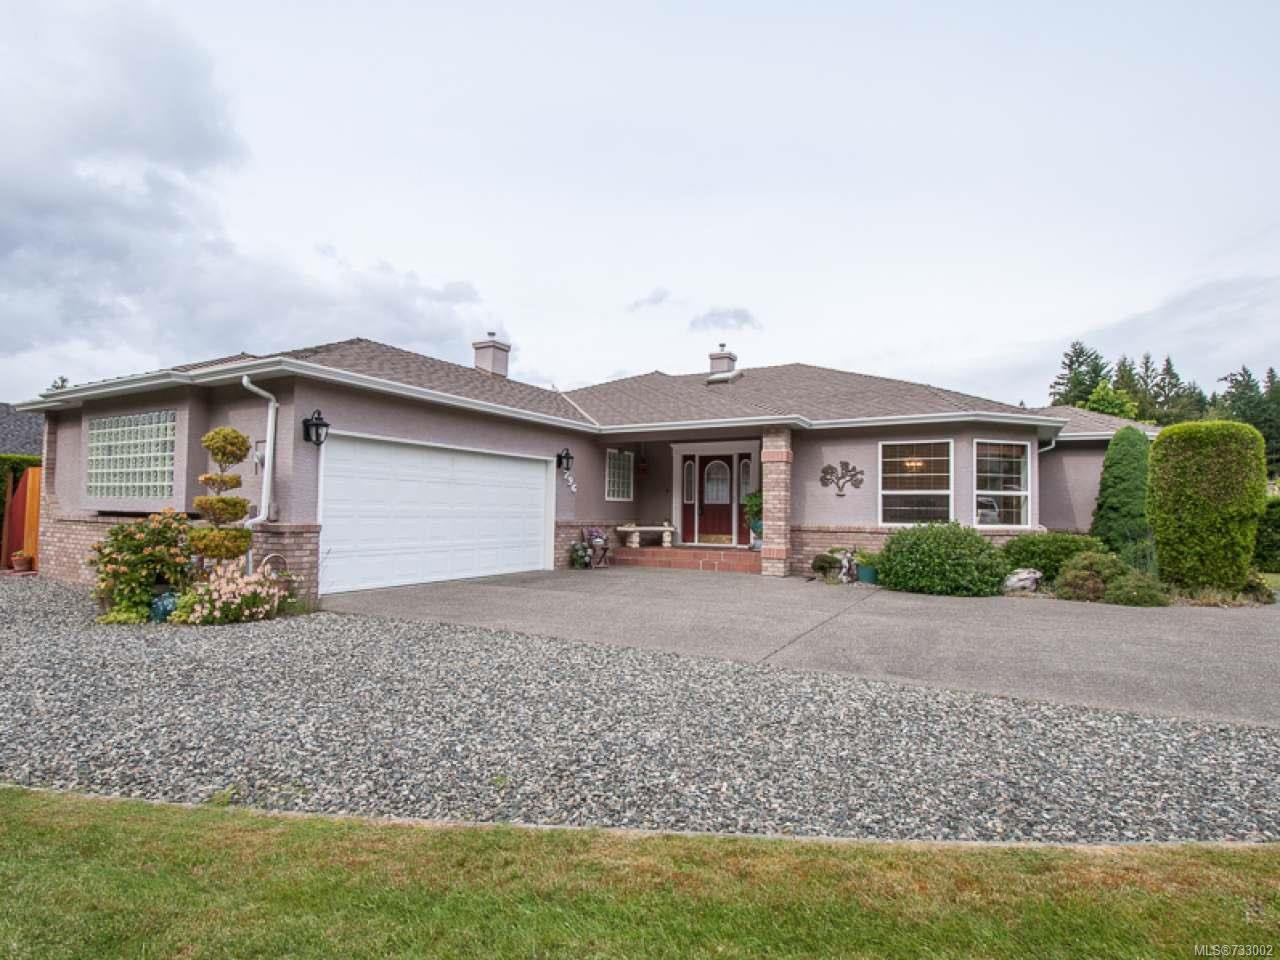 Main Photo: 796 ARBUTUS STREET in QUALICUM BEACH: PQ Qualicum Beach House for sale (Parksville/Qualicum)  : MLS®# 733002